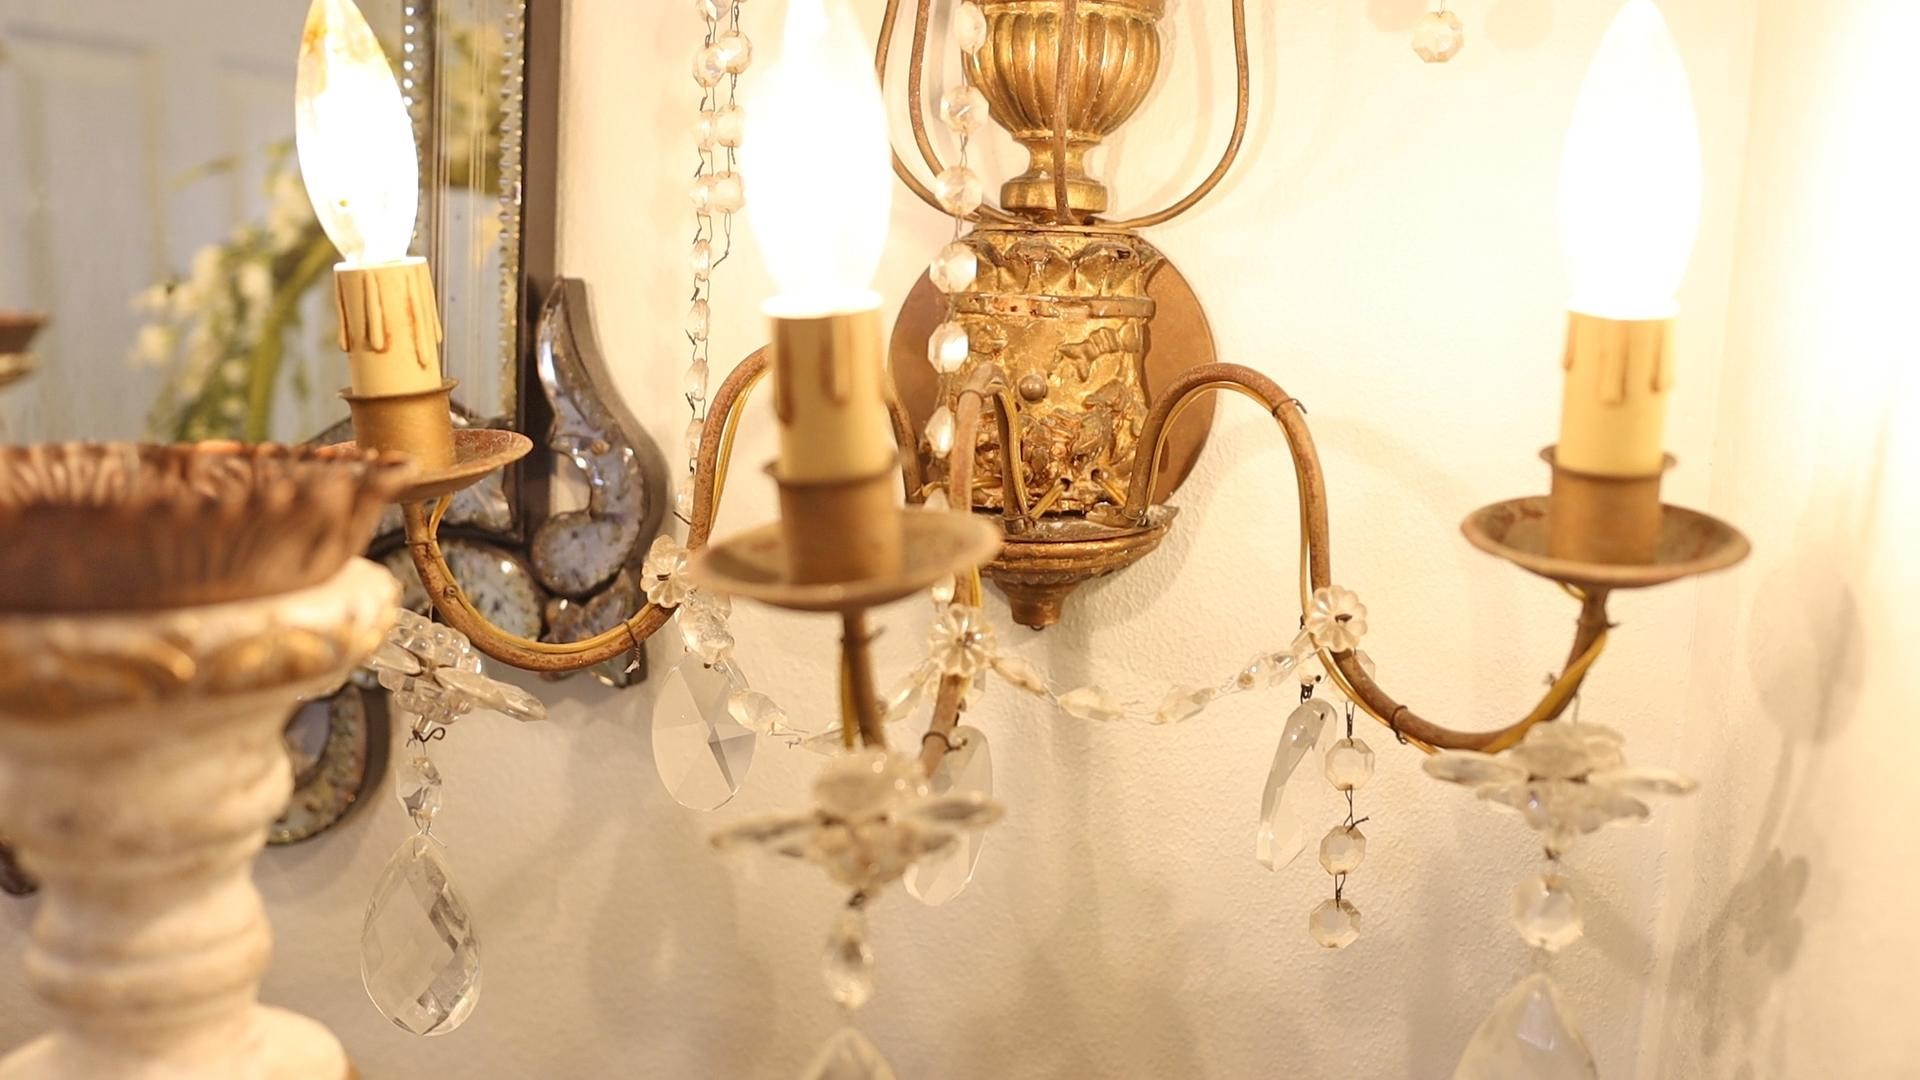 Add glam to your hallways with gilt french country decor wall sconces to add interest and reflect light.